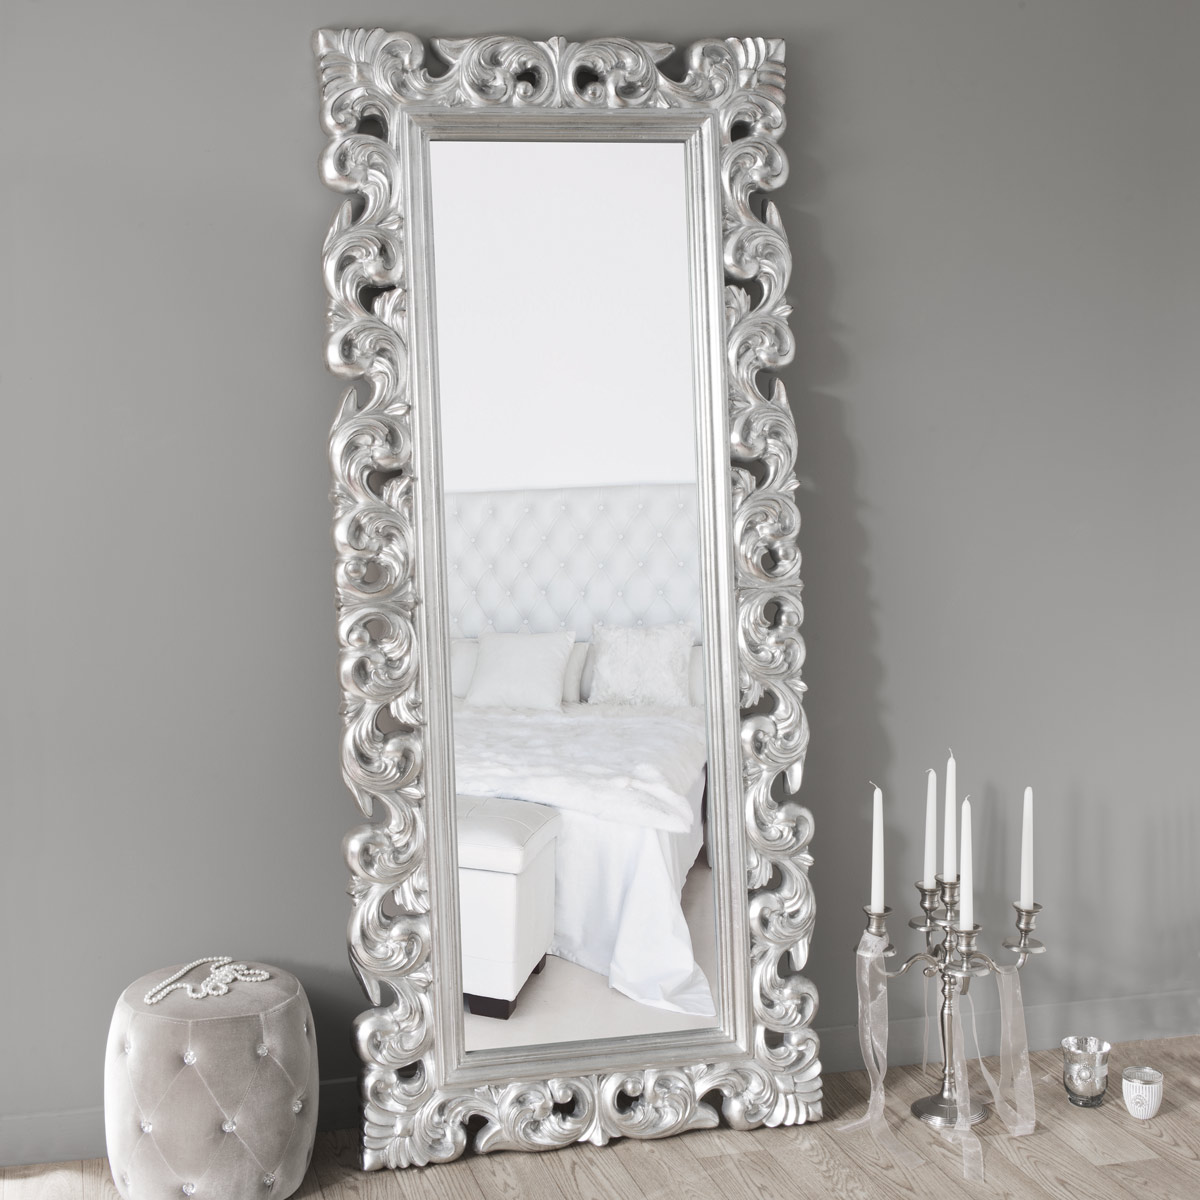 miroir baroque noir maison du monde ventana blog. Black Bedroom Furniture Sets. Home Design Ideas